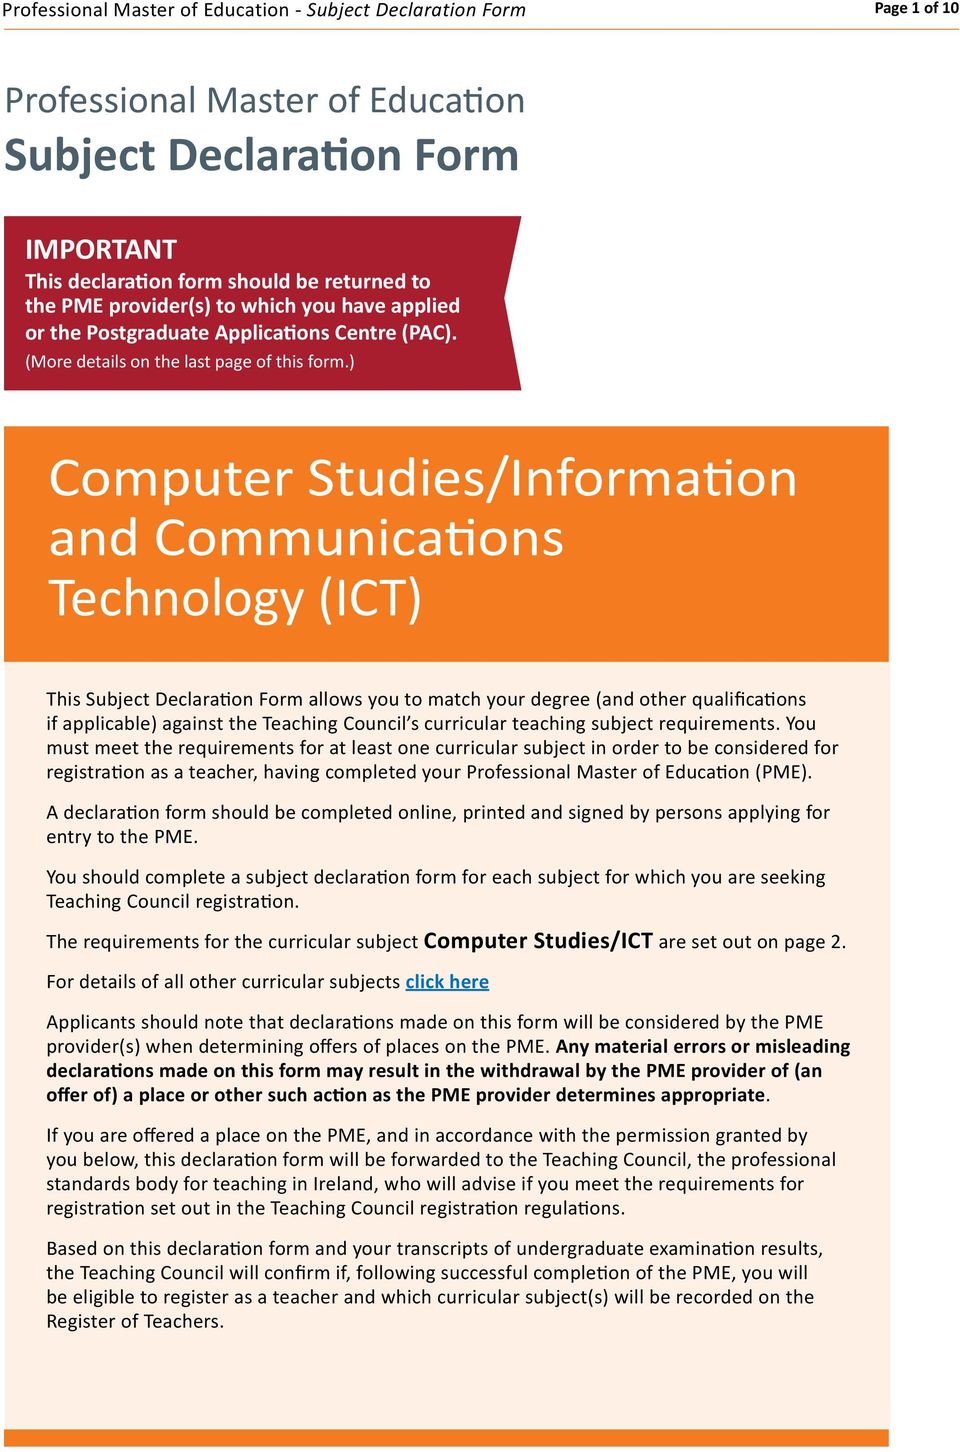 ) Computer Studies/Information and Communications Technology (ICT) This Subject Declaration Form allows you to match your degree (and other qualifications if applicable) against the Teaching Council